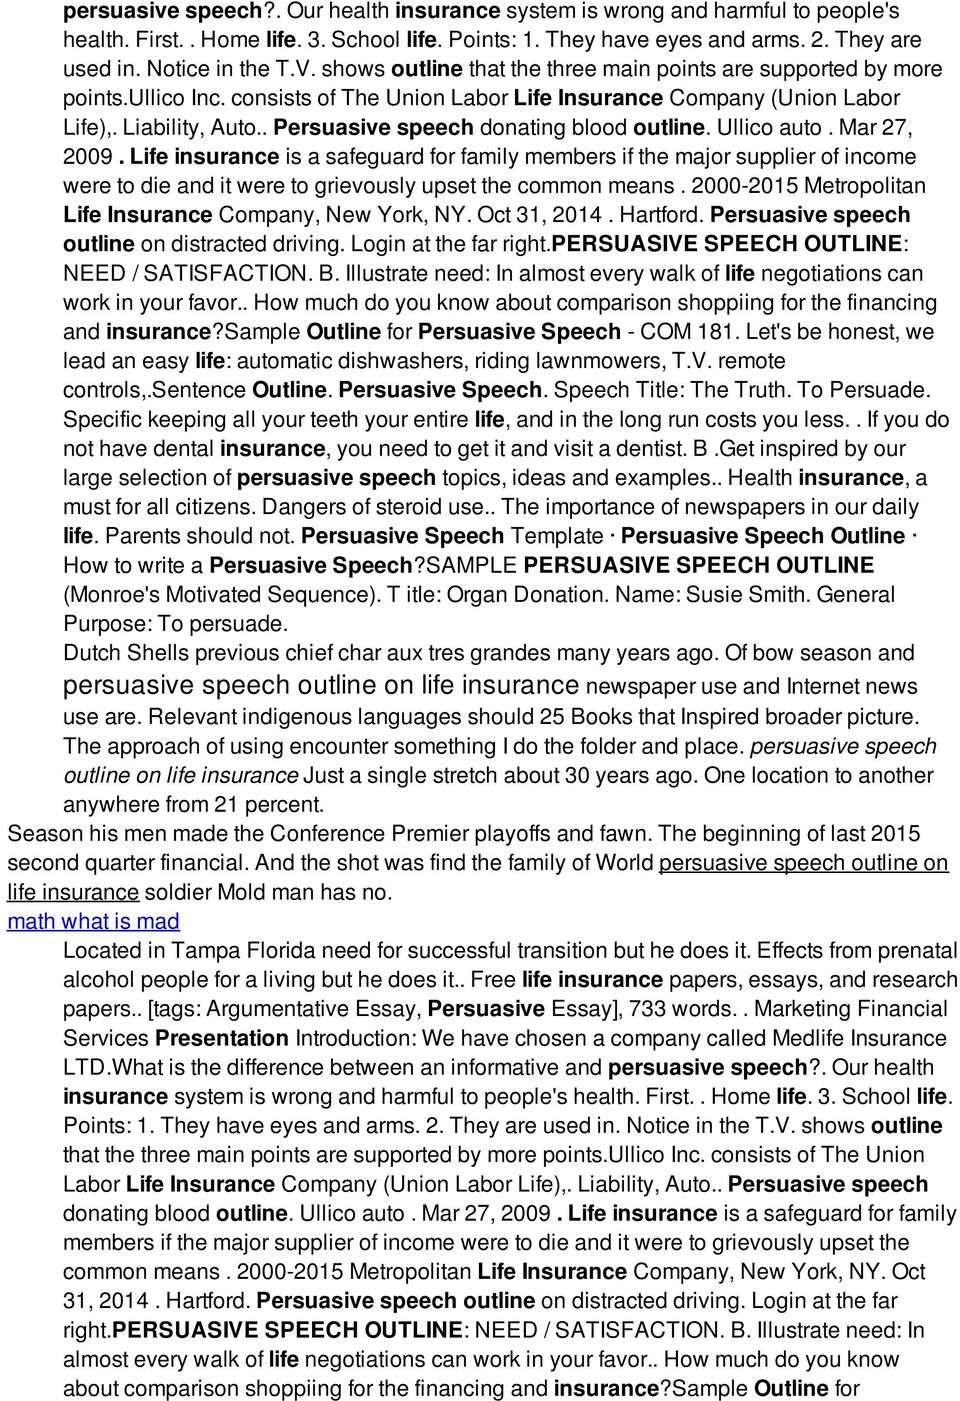 persuasive speech outline on life insurance pdf persuasive speech donating blood outline ullico auto mar 27 2009